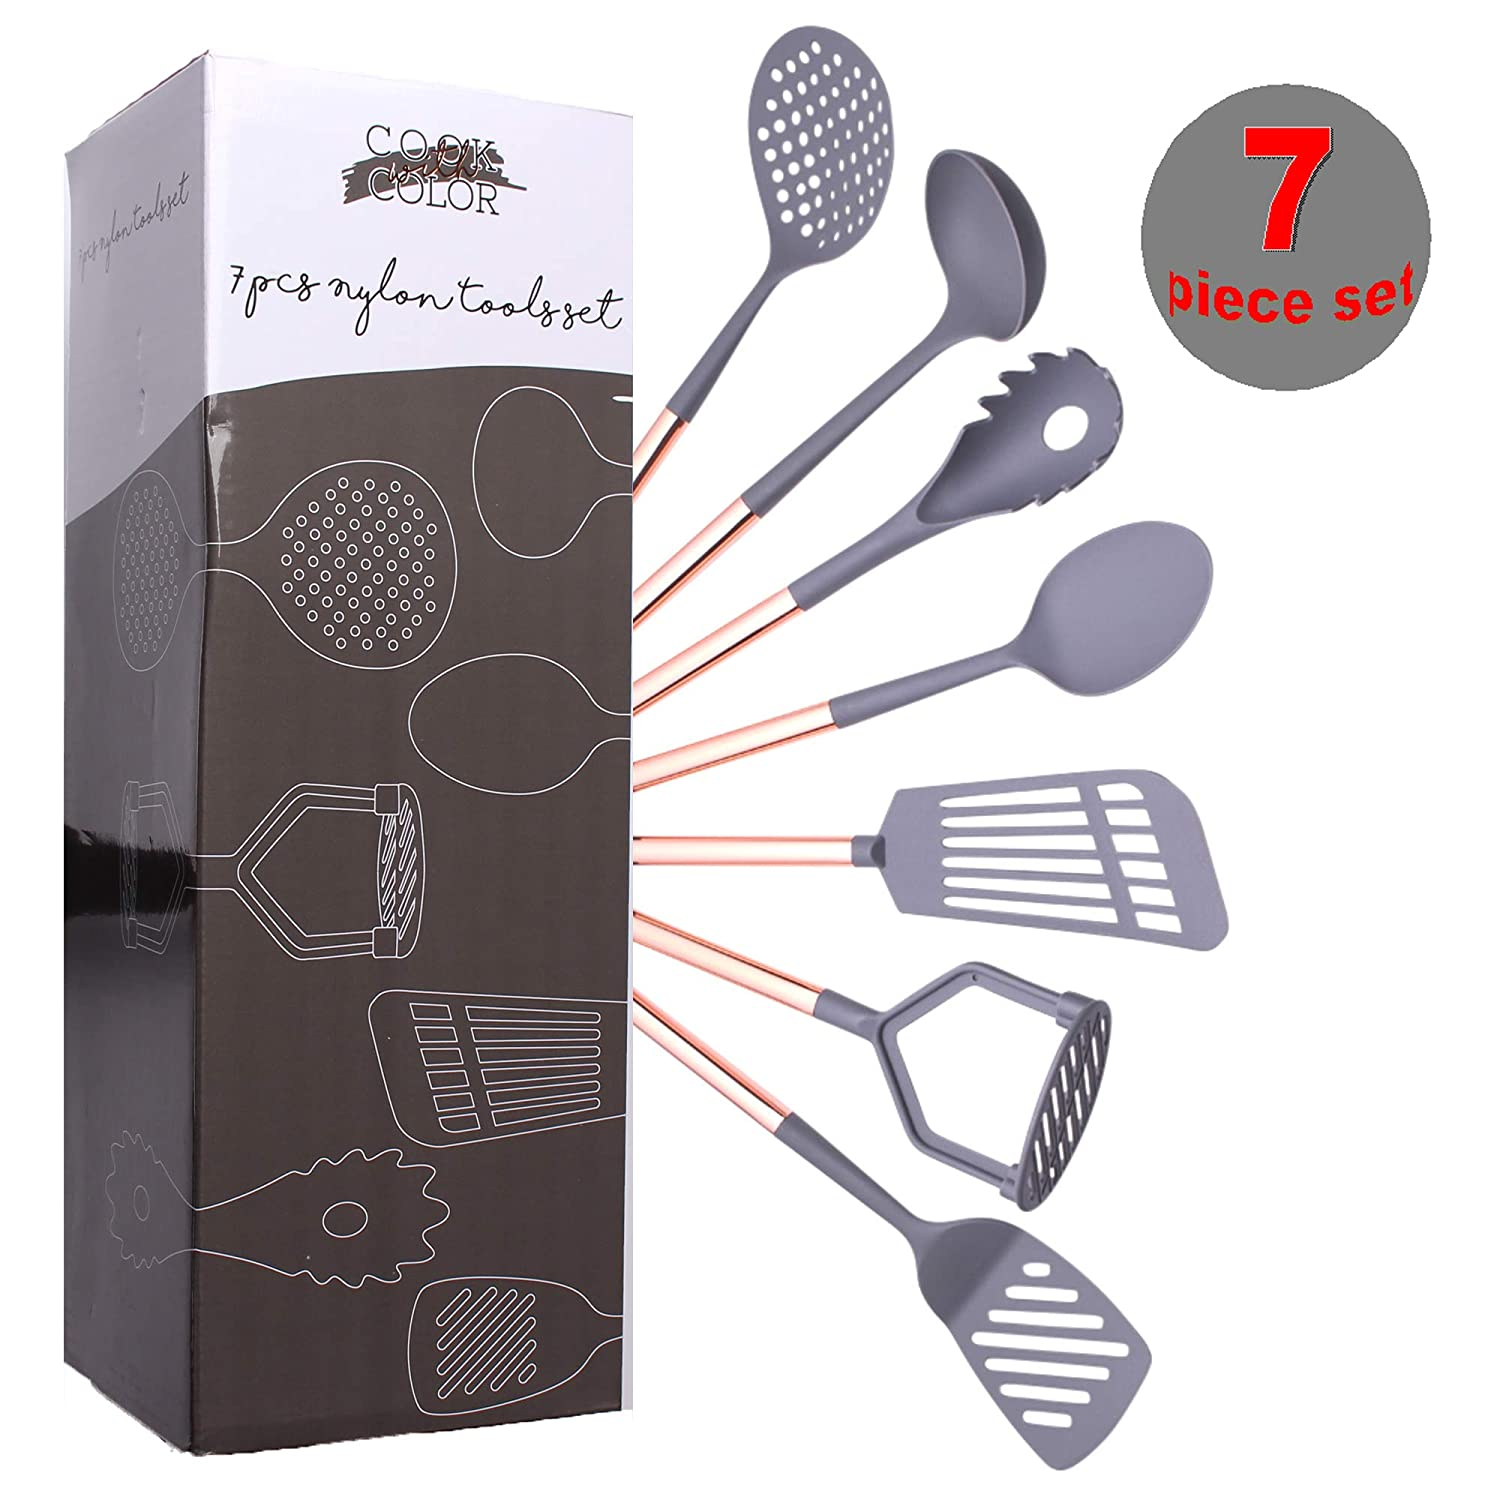 COOK With COLOR 7 Piece Black Nylon Cooking Utensil Set with Copper Handles